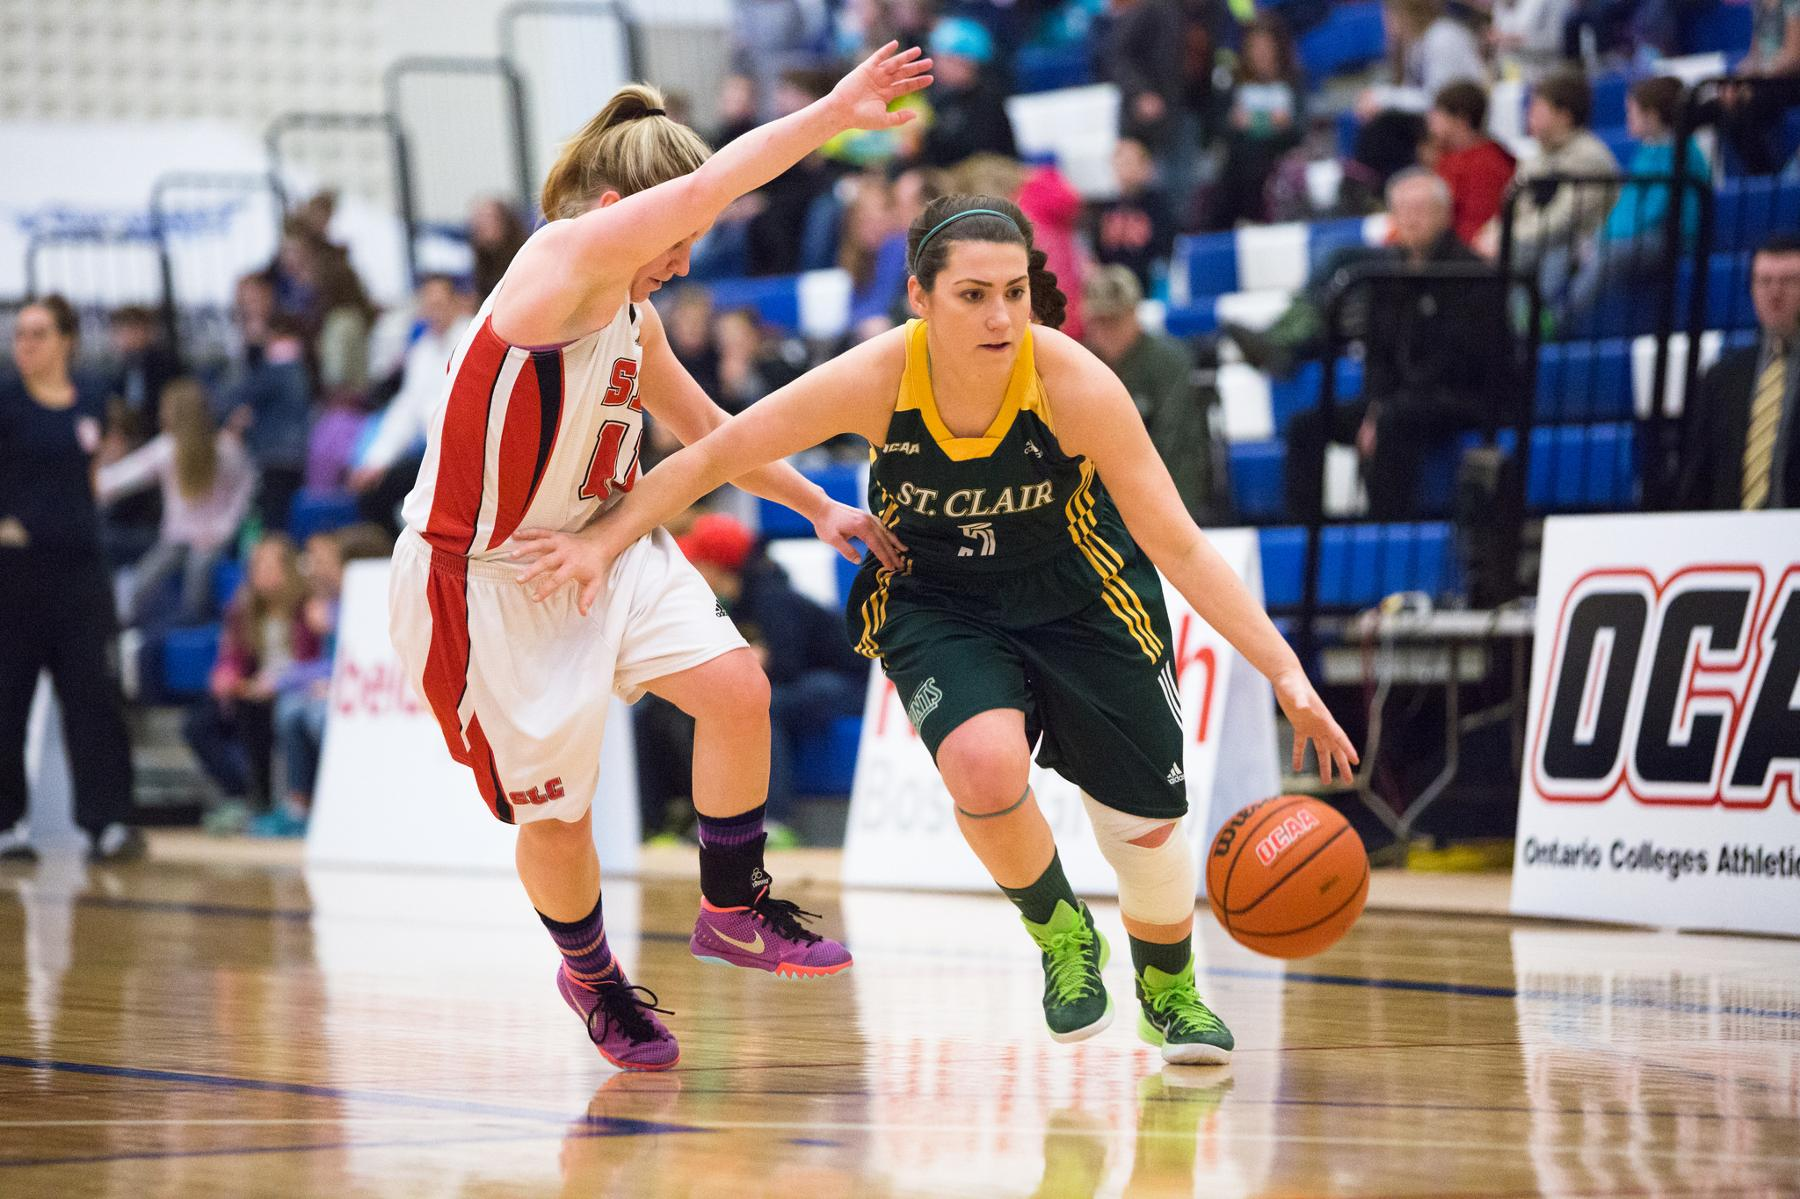 PHOTOS: Game 5 - St. Clair Saints vs. St. Lawrence Vikings